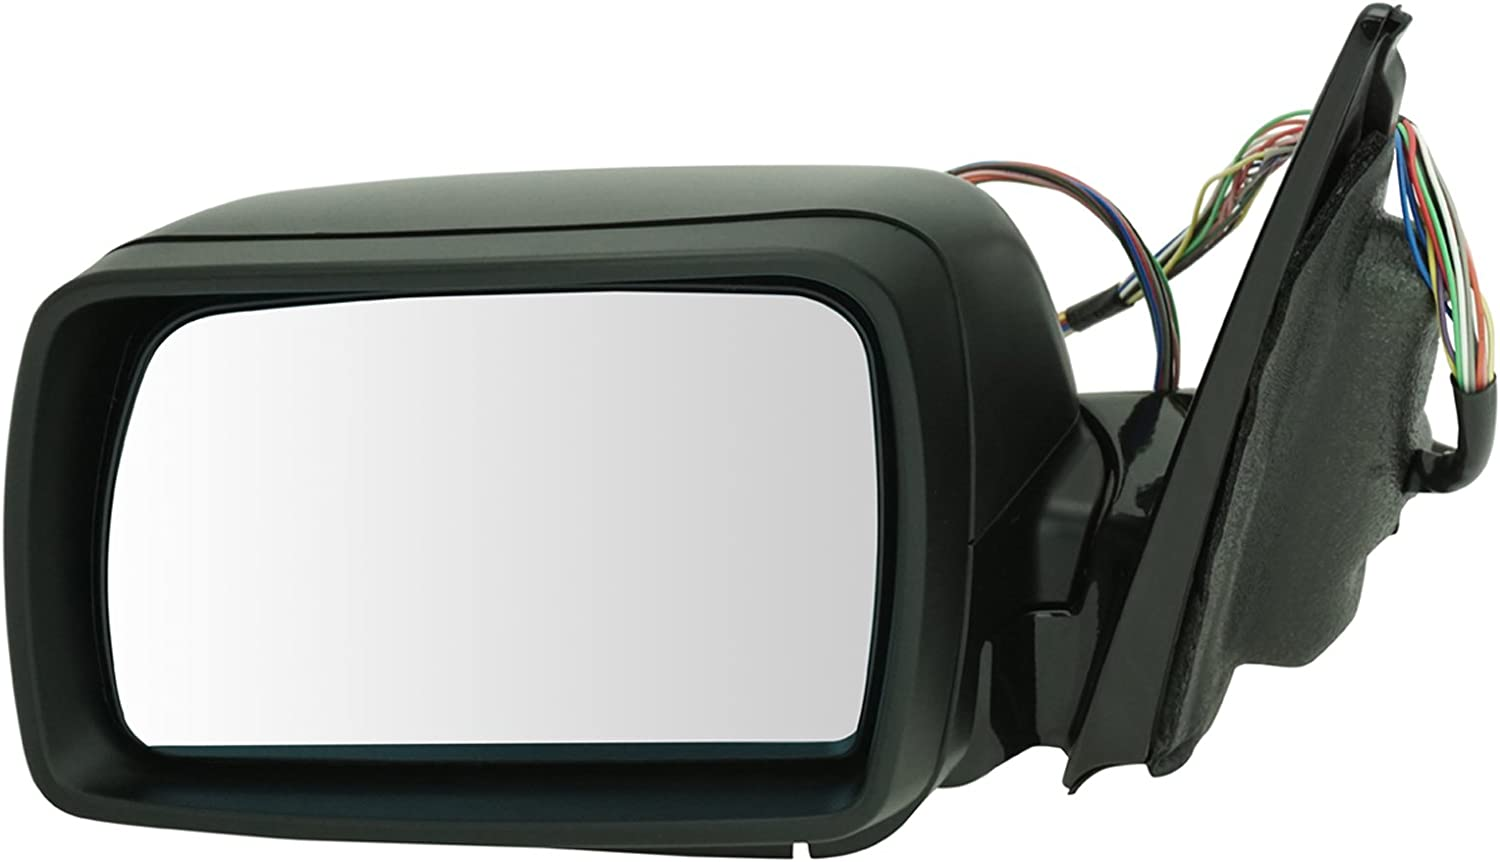 00-06 Bmw X5 Driver Side Mirror Replacement Heated Without Sport Package